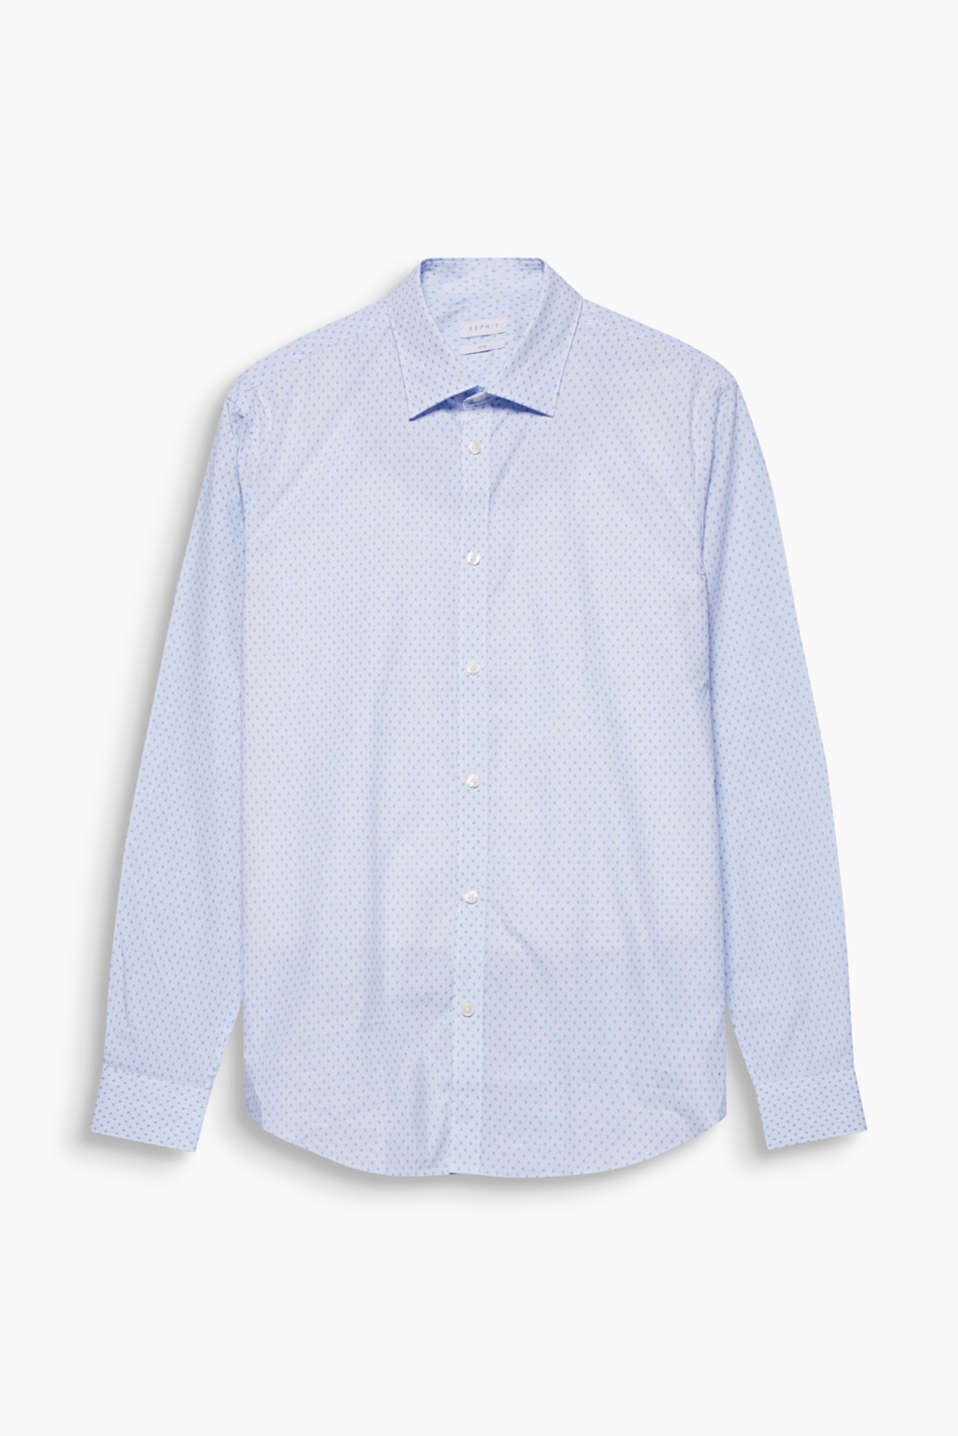 For your nuanced business look: this shirt with mini-check and tonal minimalist print, 100% cotton.